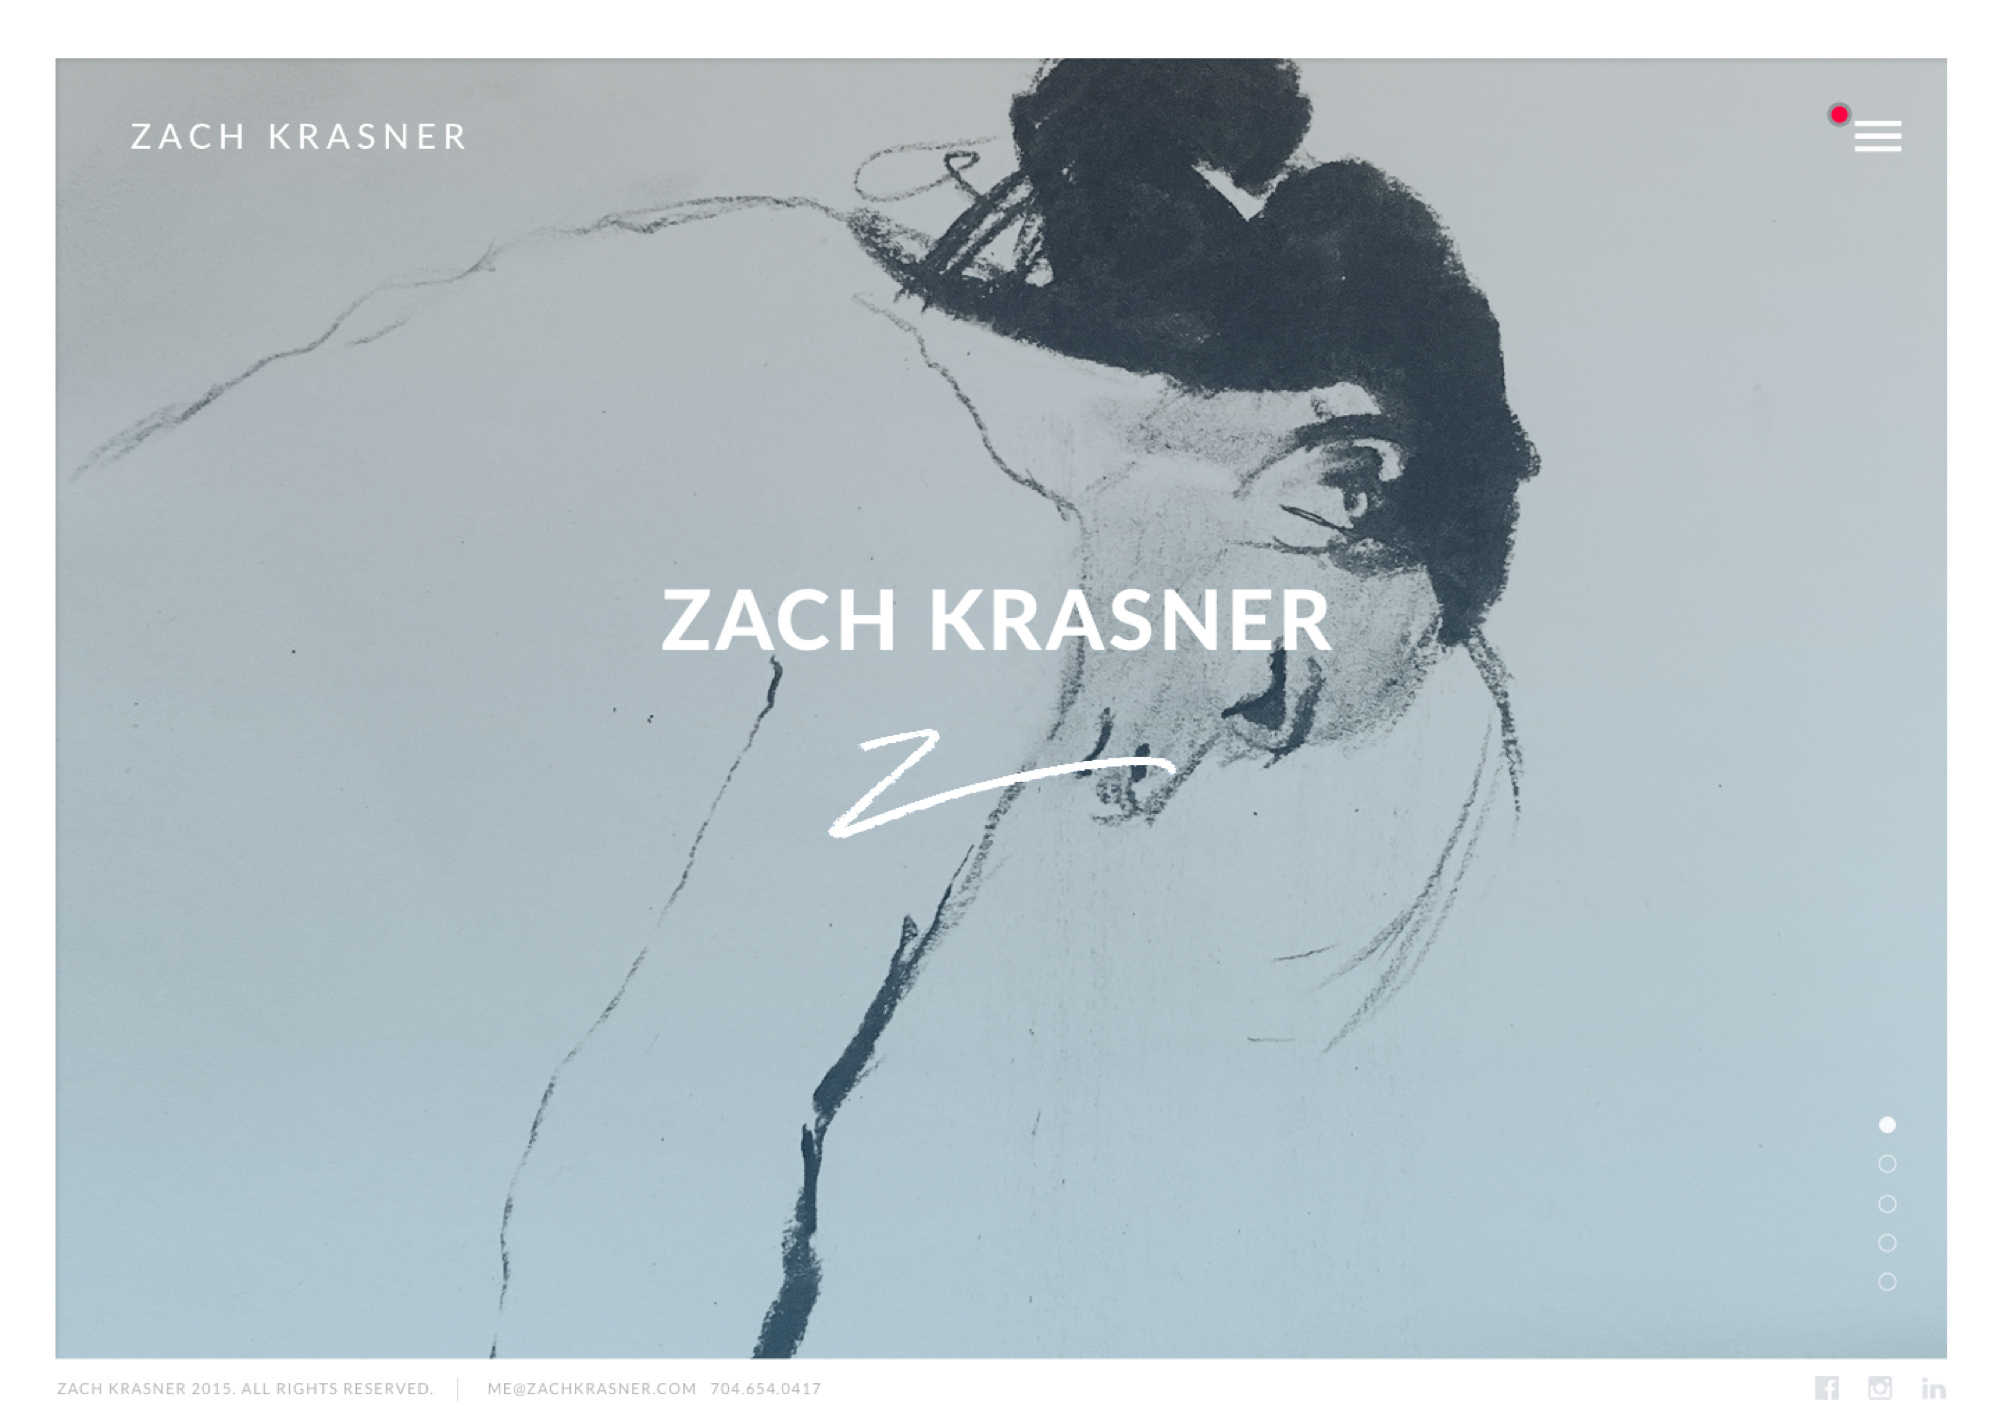 Artwork of Zach Krasner